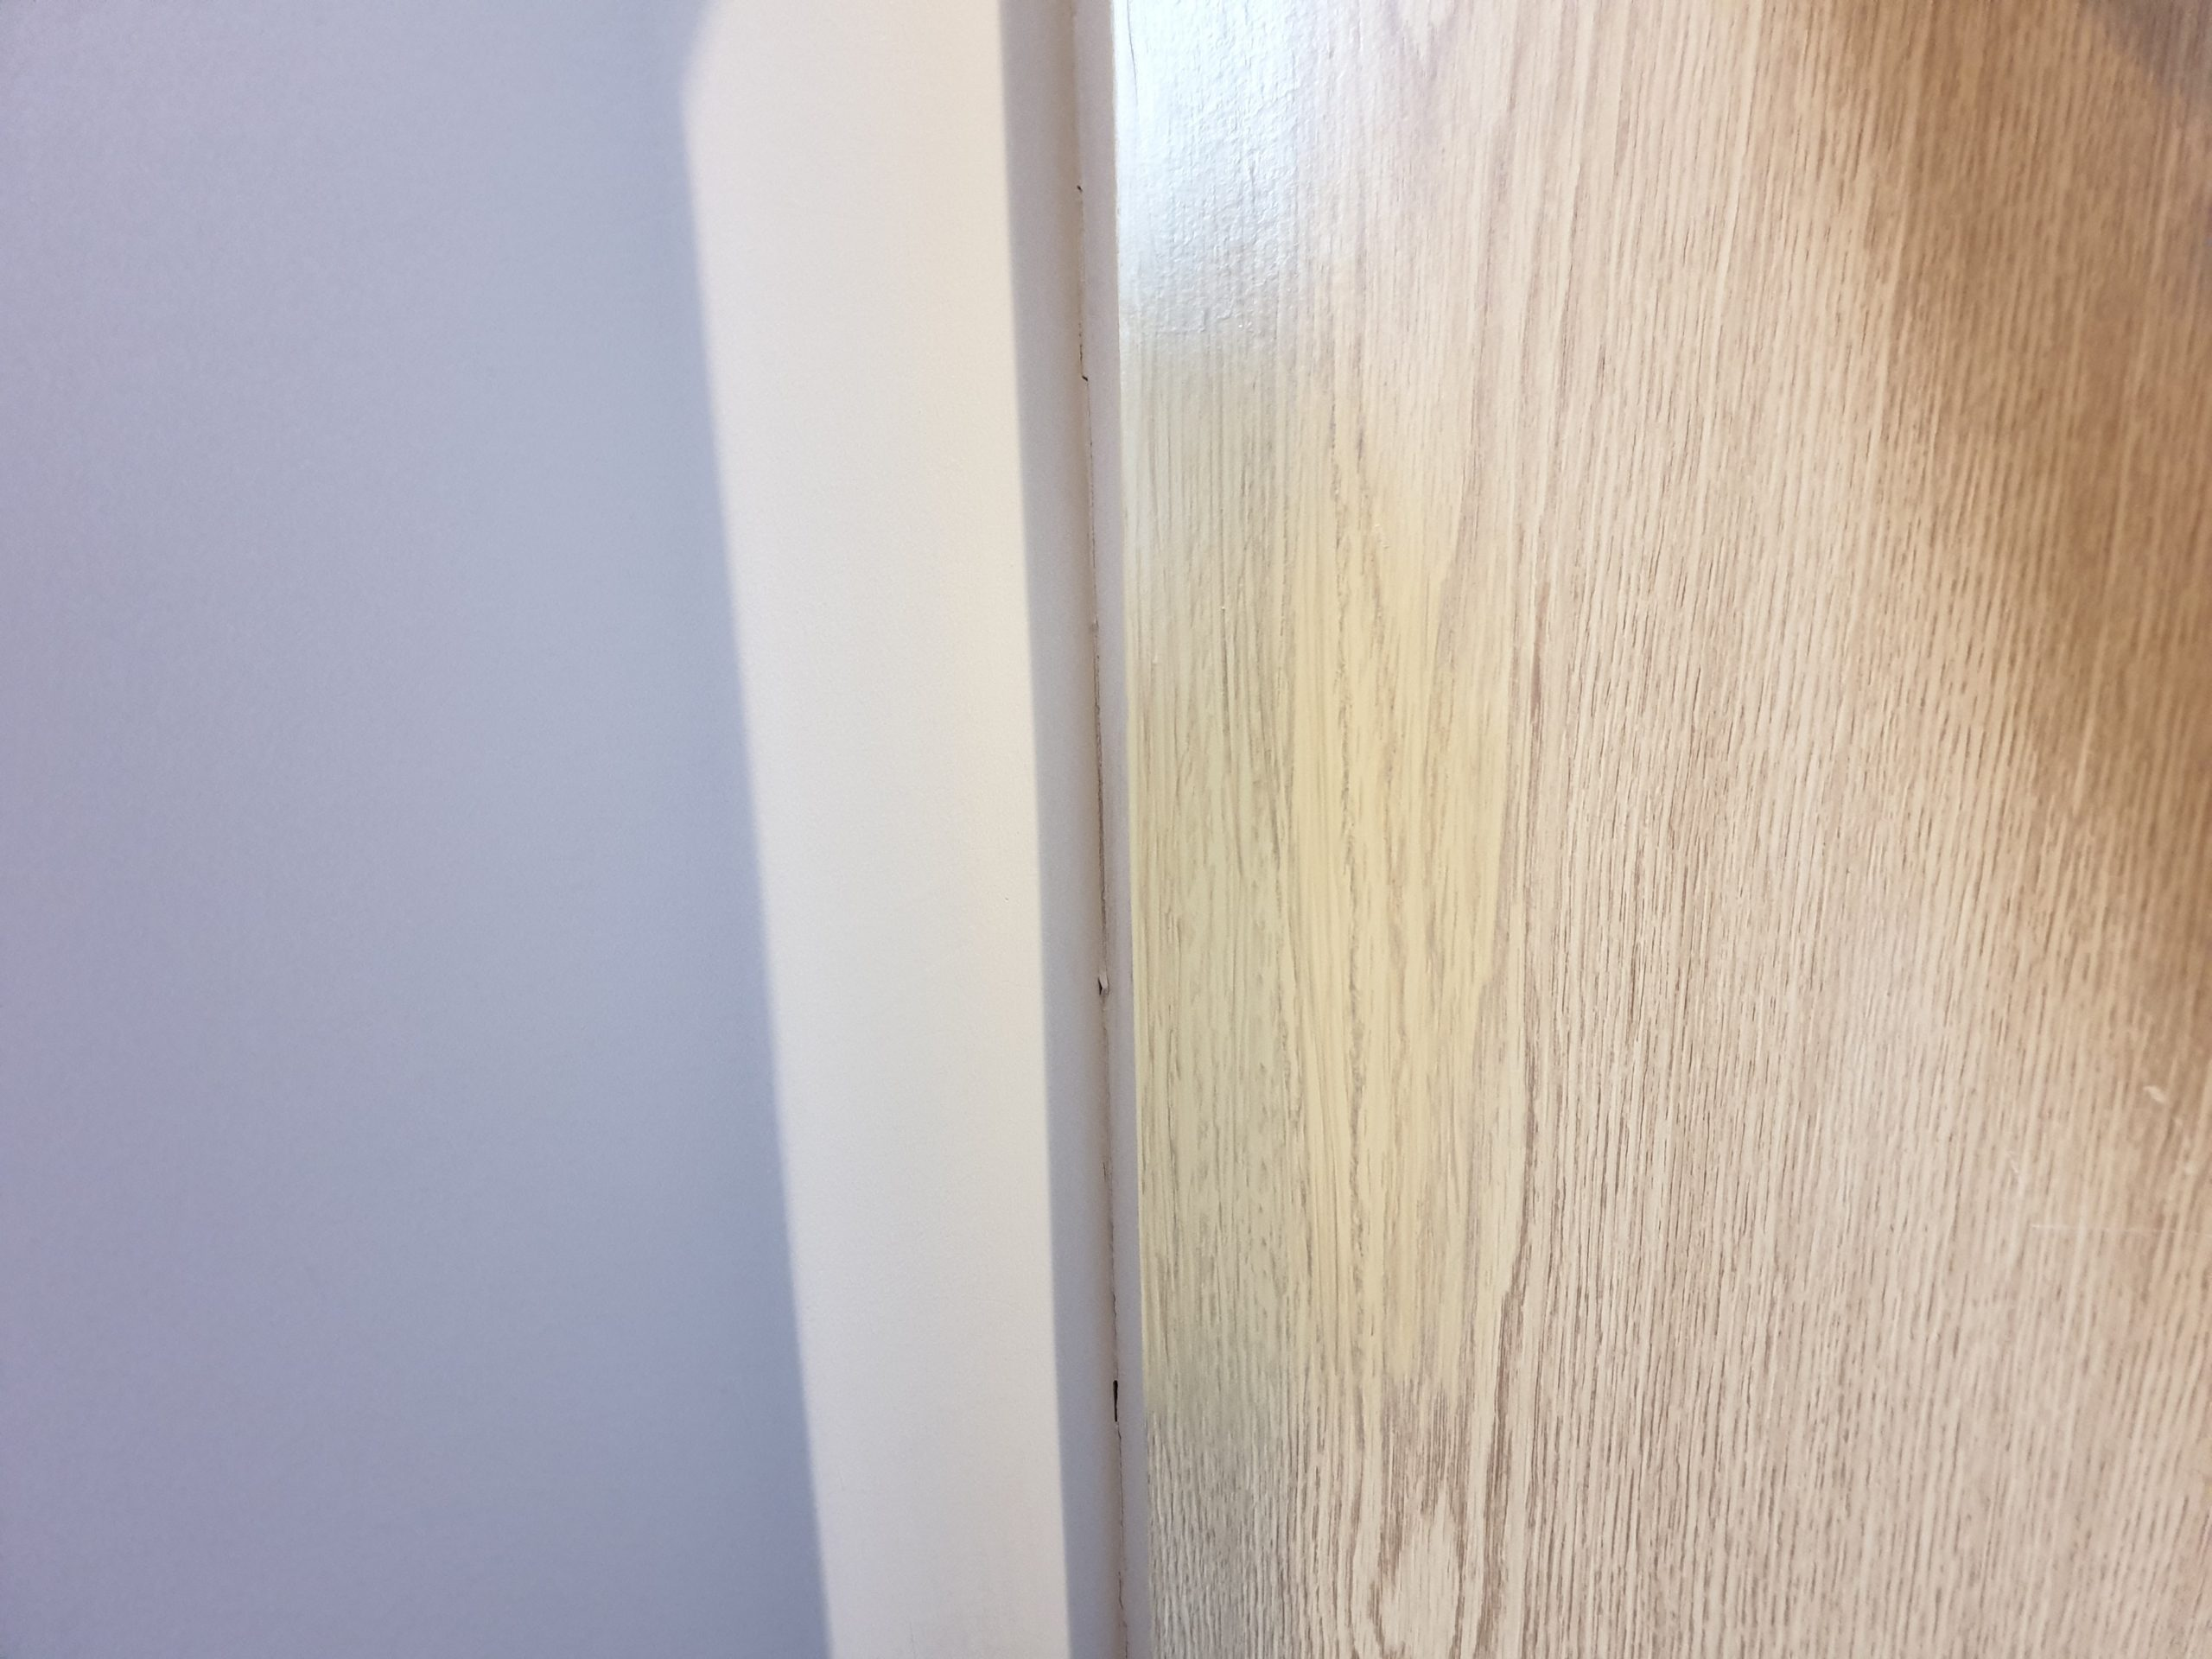 DAMAGED LAMINATE FOIL WRAP DOOR REPAIR AFTER